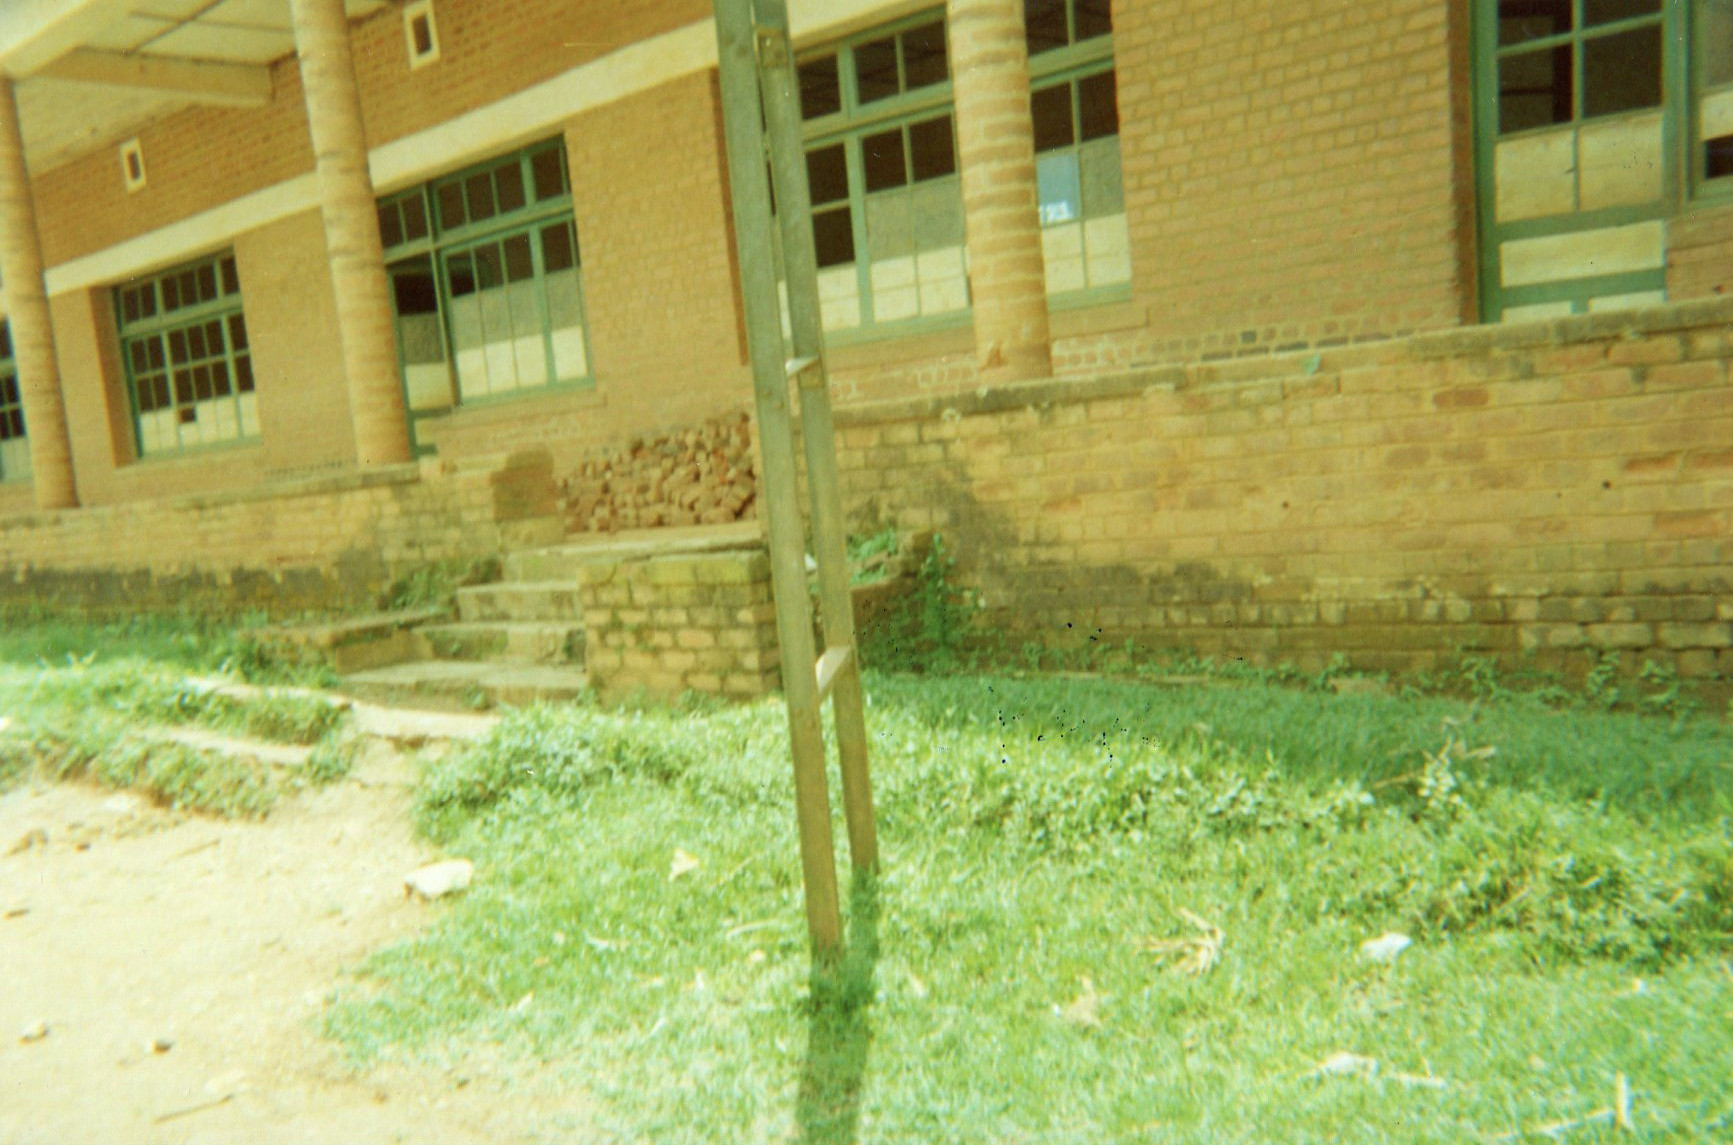 Schools were destroyed and therefore need to be rehabilitated.